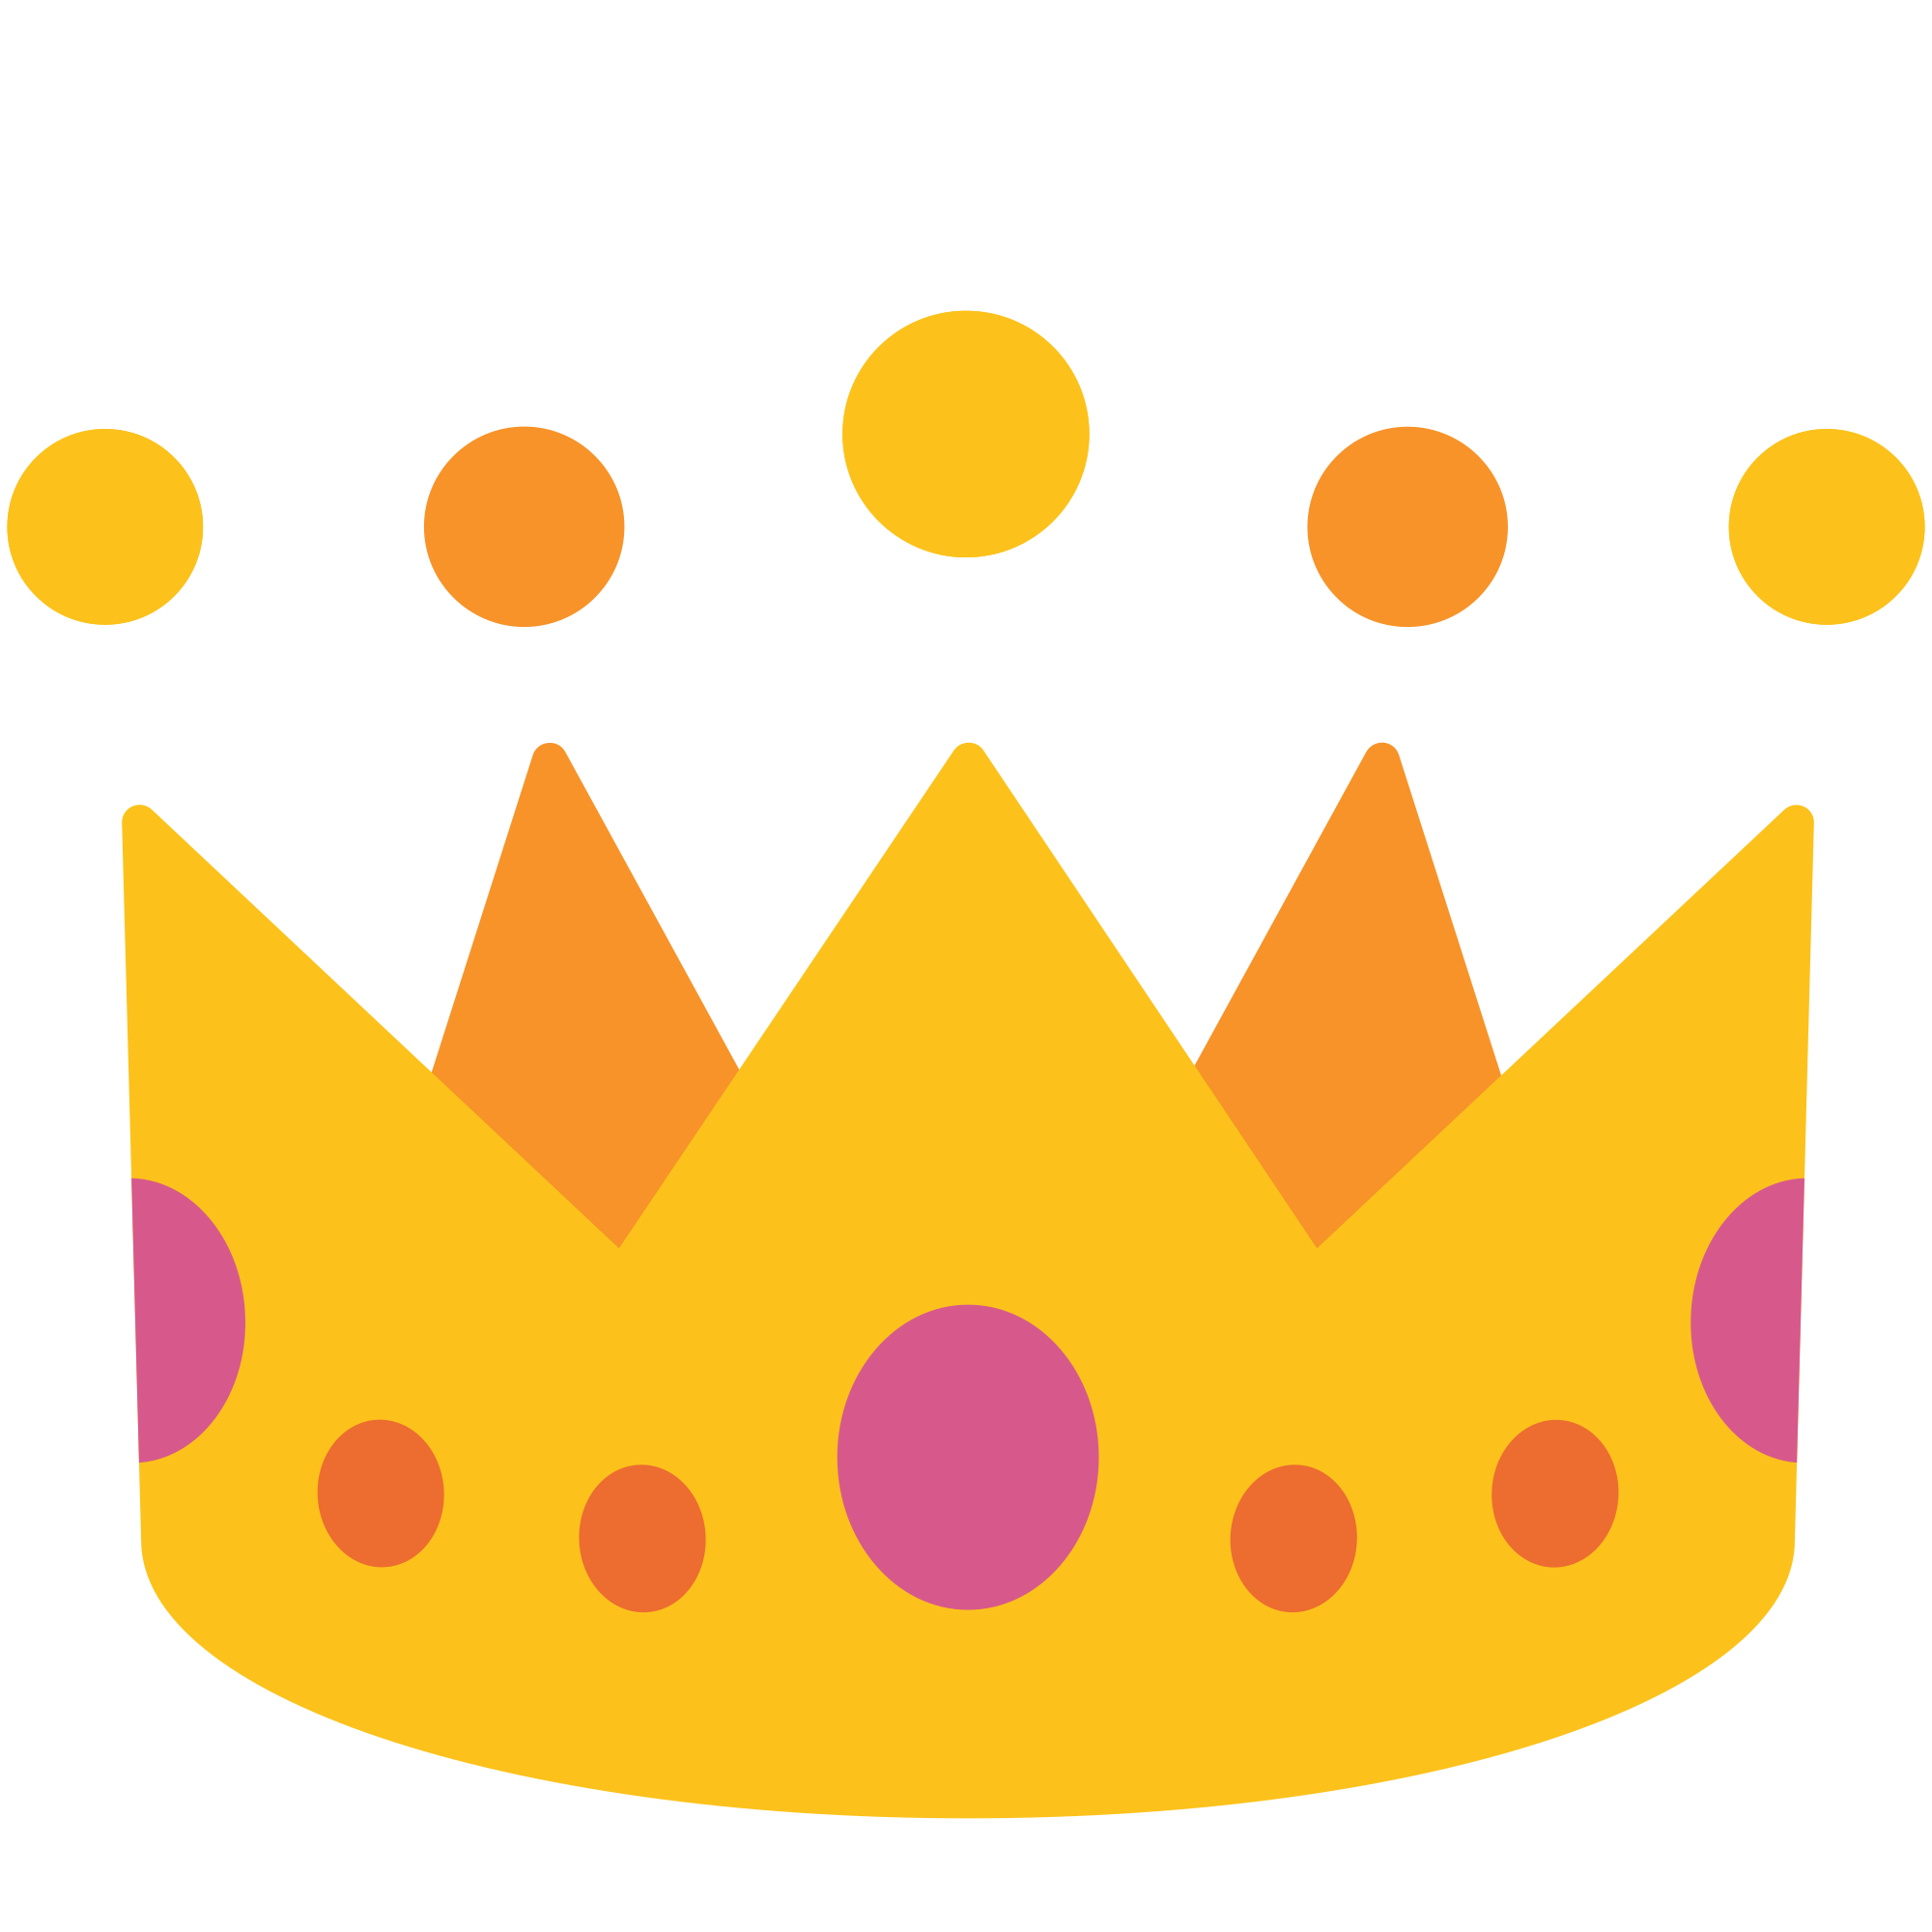 Crown emoji clipart svg black and white library File:Emoji u1f451.svg - Wikimedia Commons svg black and white library